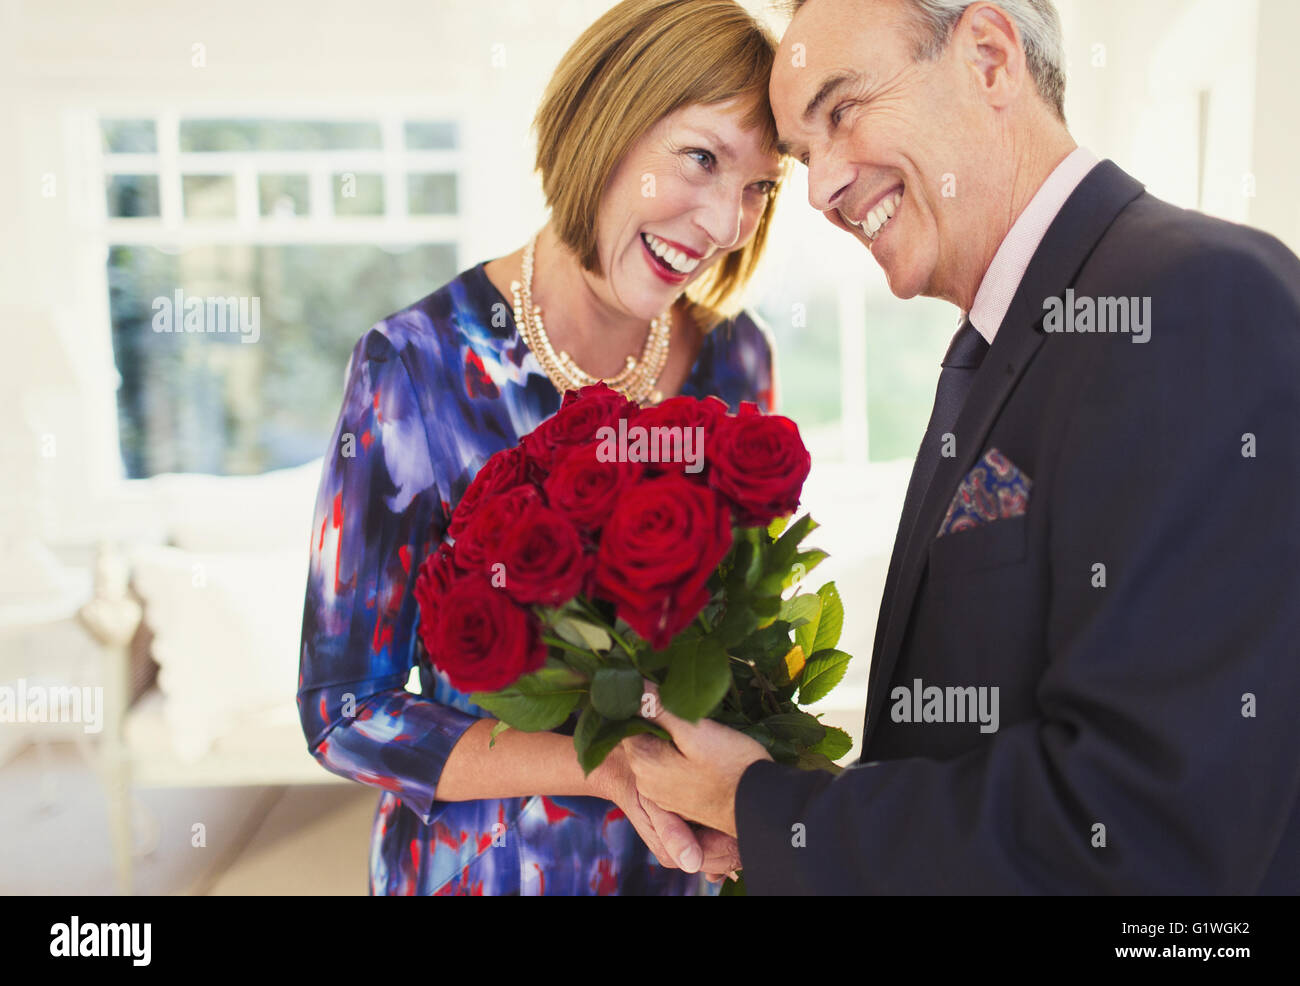 Affectionate well-dressed mature couple with rose bouquet - Stock Image